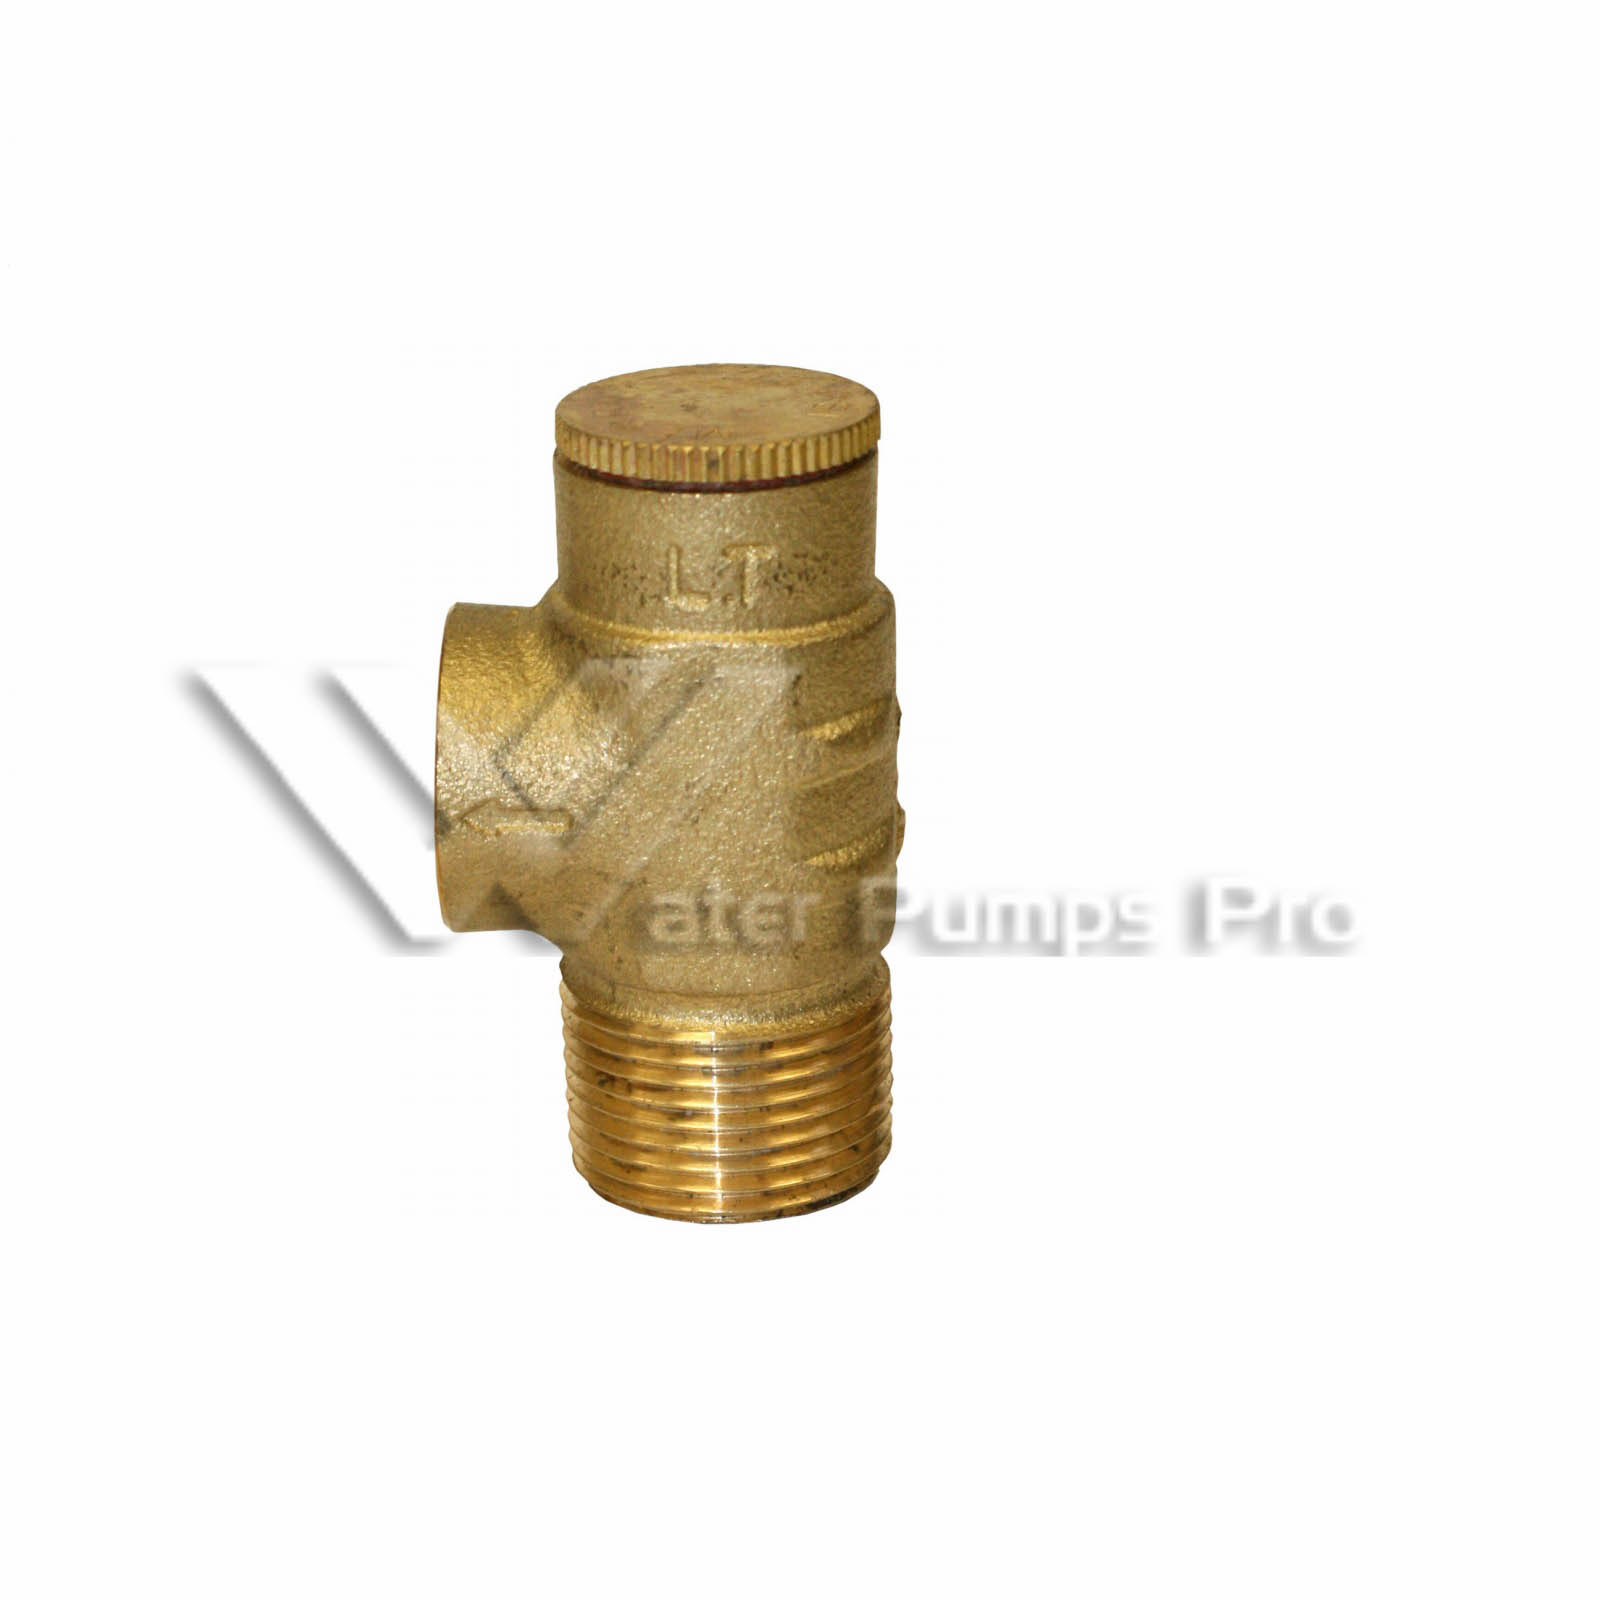 Merrill PRVNL75 No Lead Brass Pressure Relief Valve